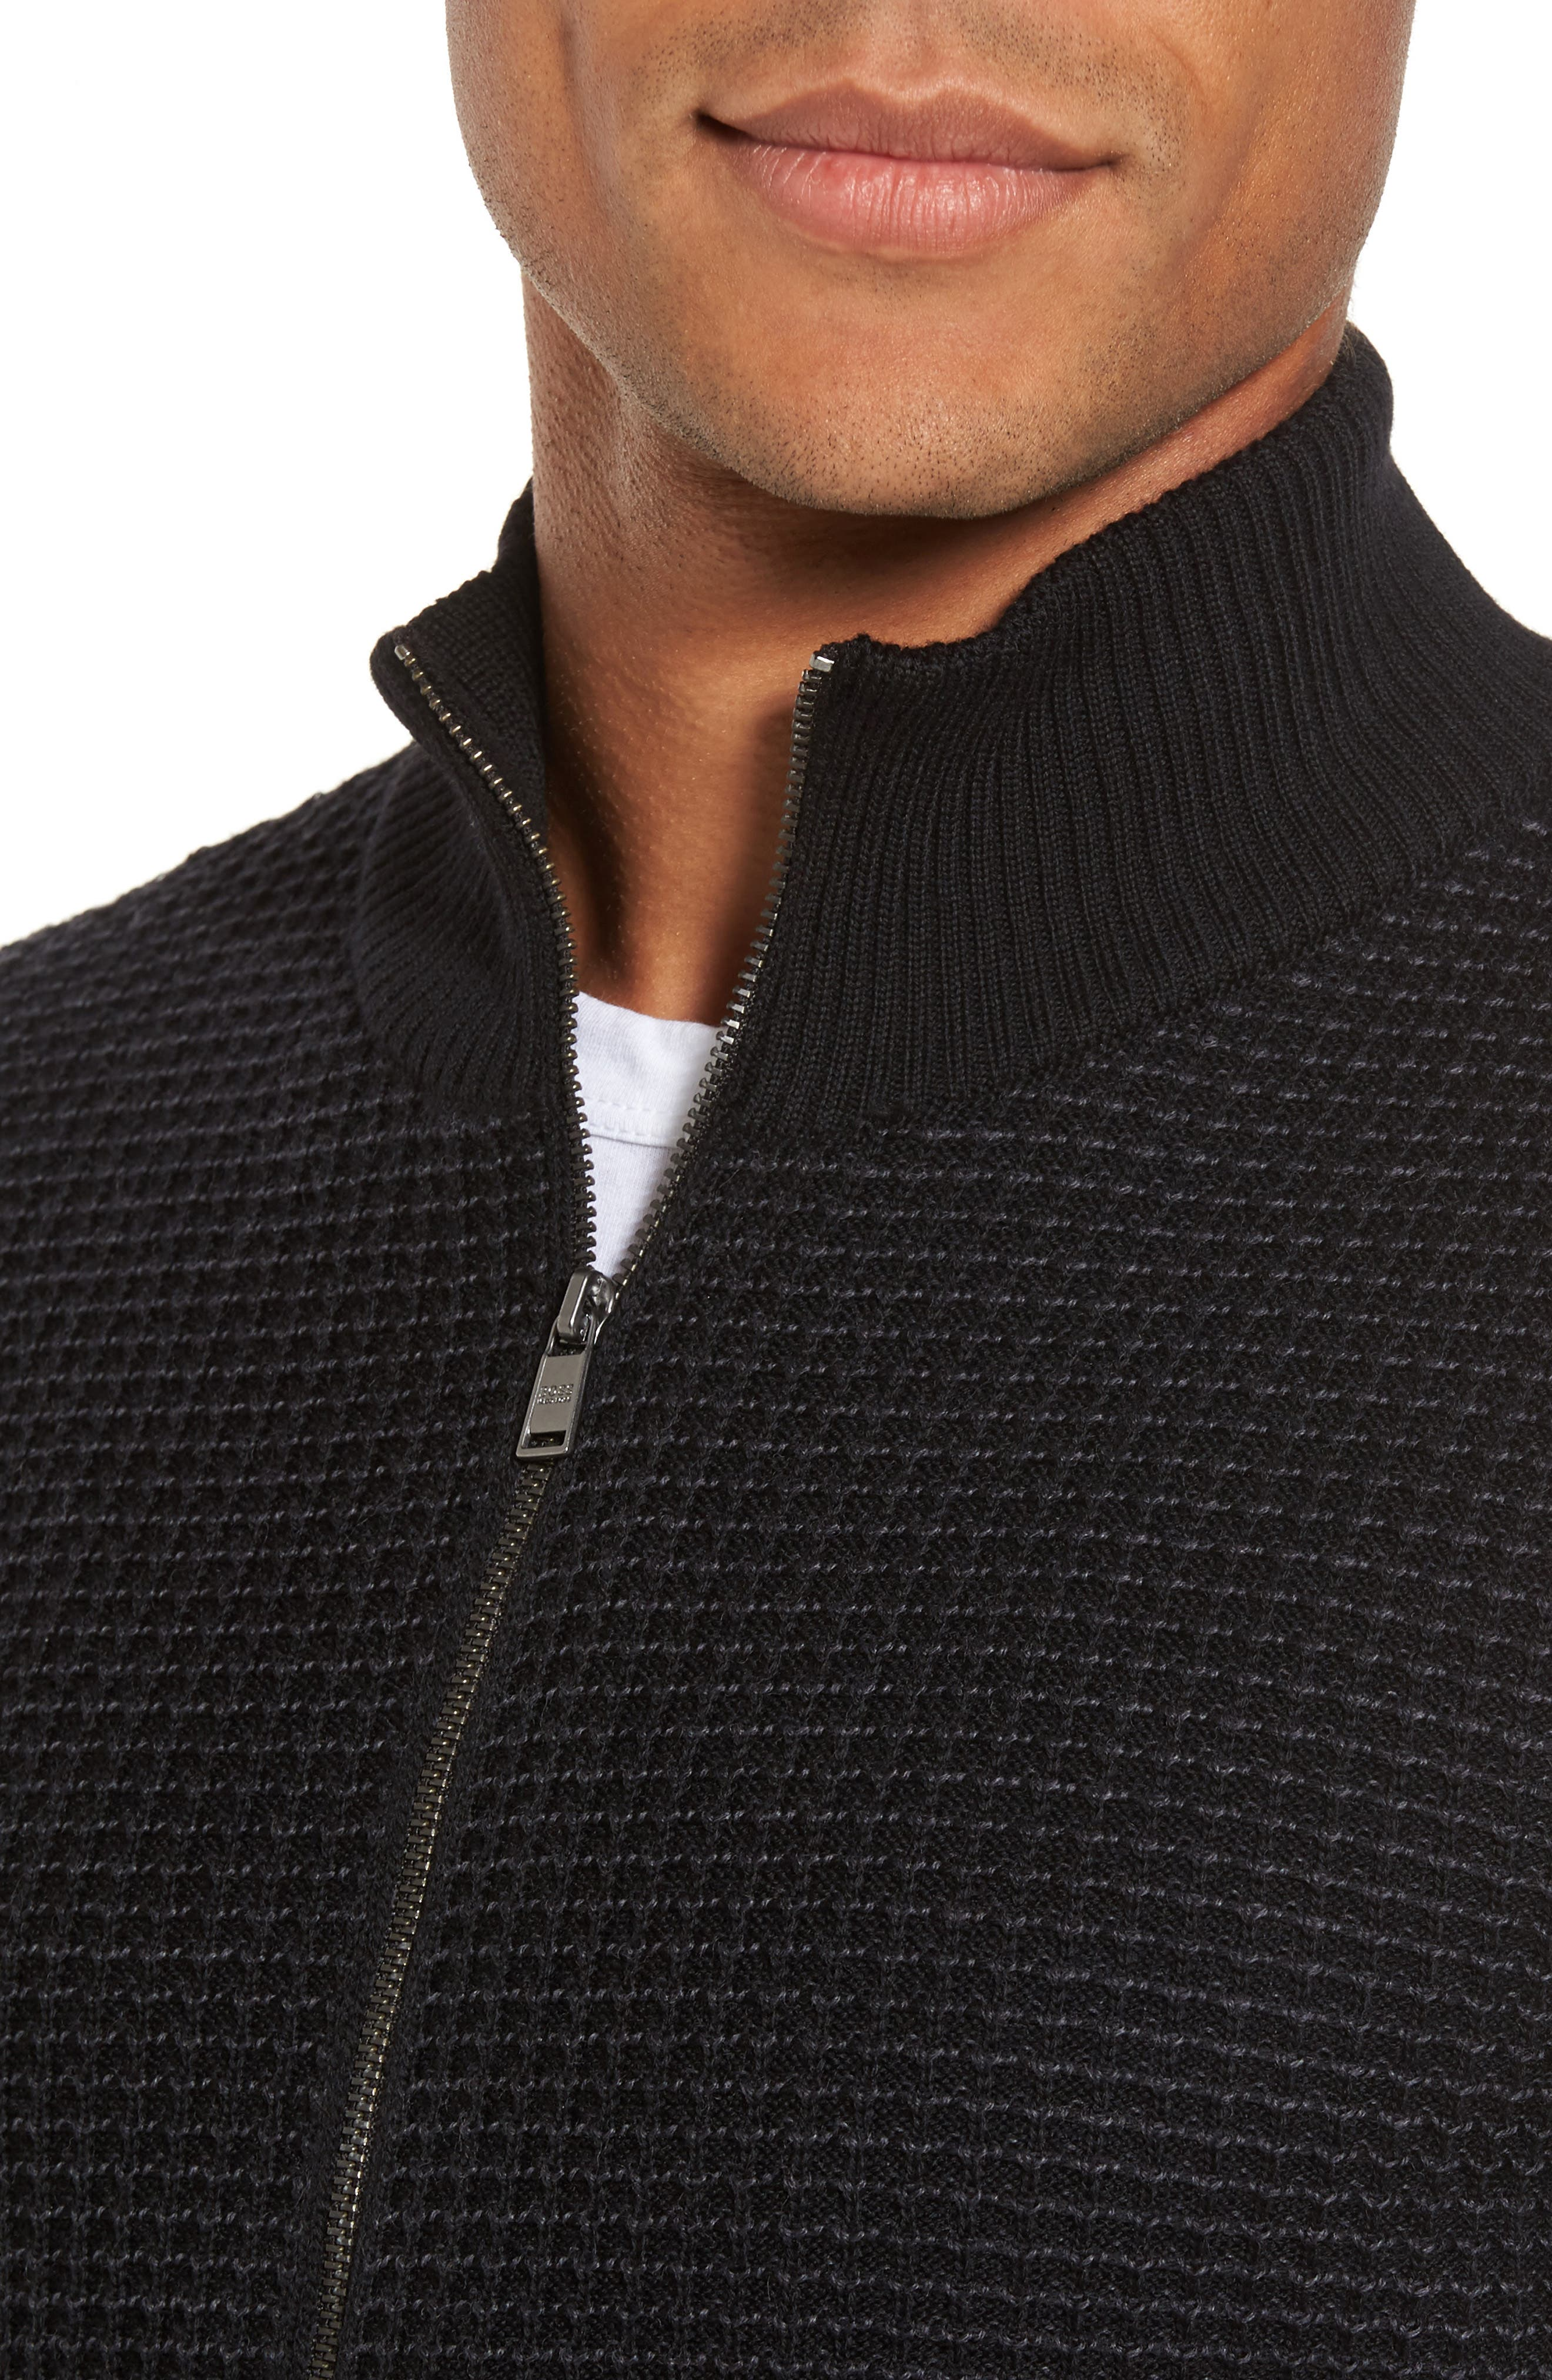 Bacco Full Zip Wool Sweater Jacket,                             Alternate thumbnail 4, color,                             001